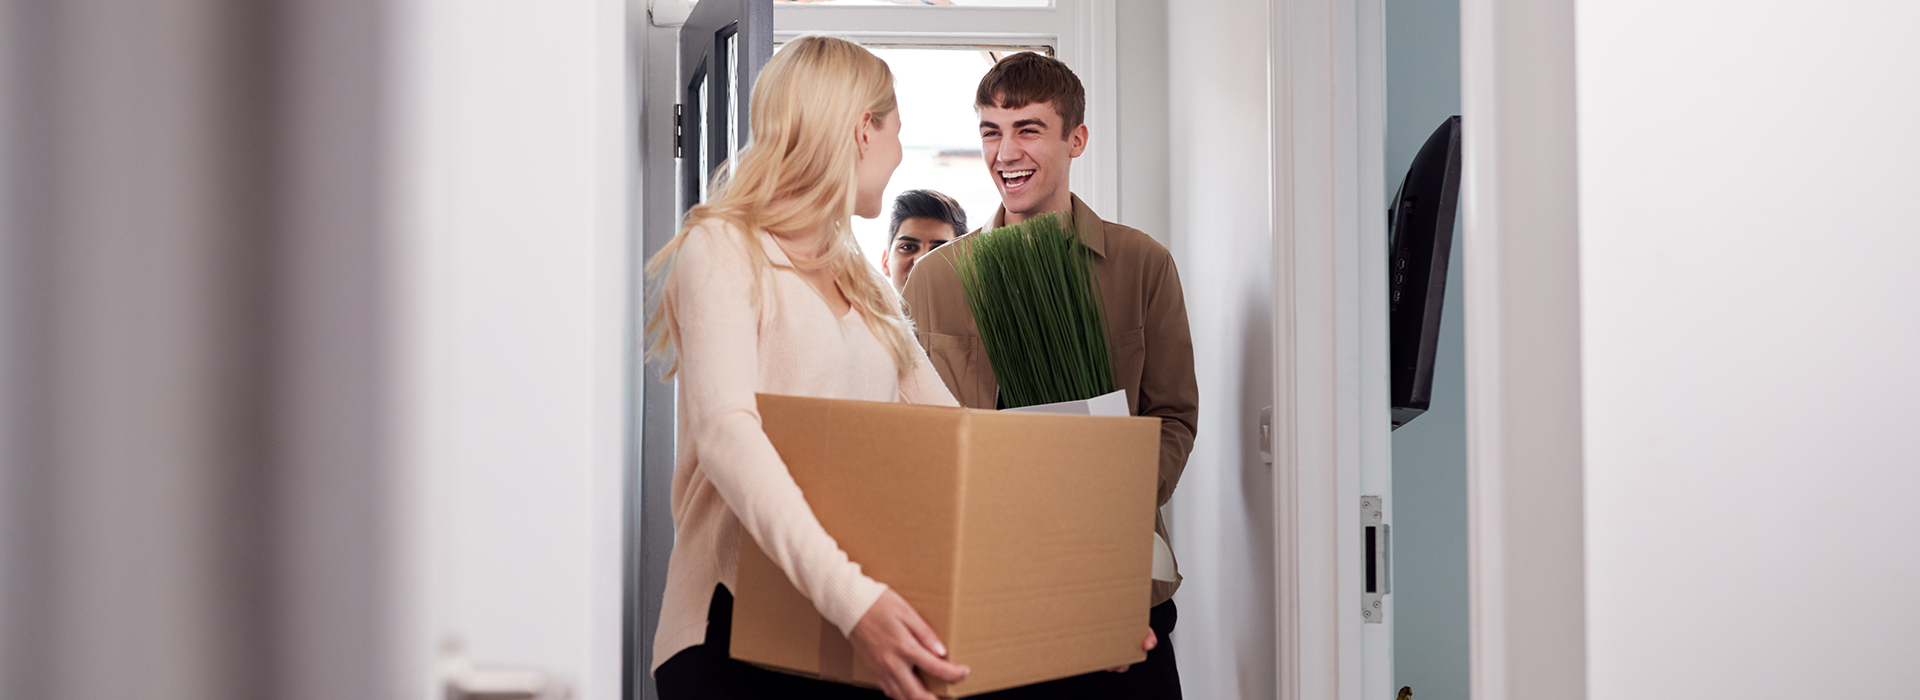 blonde girl with paper box moving in with her boyfriend